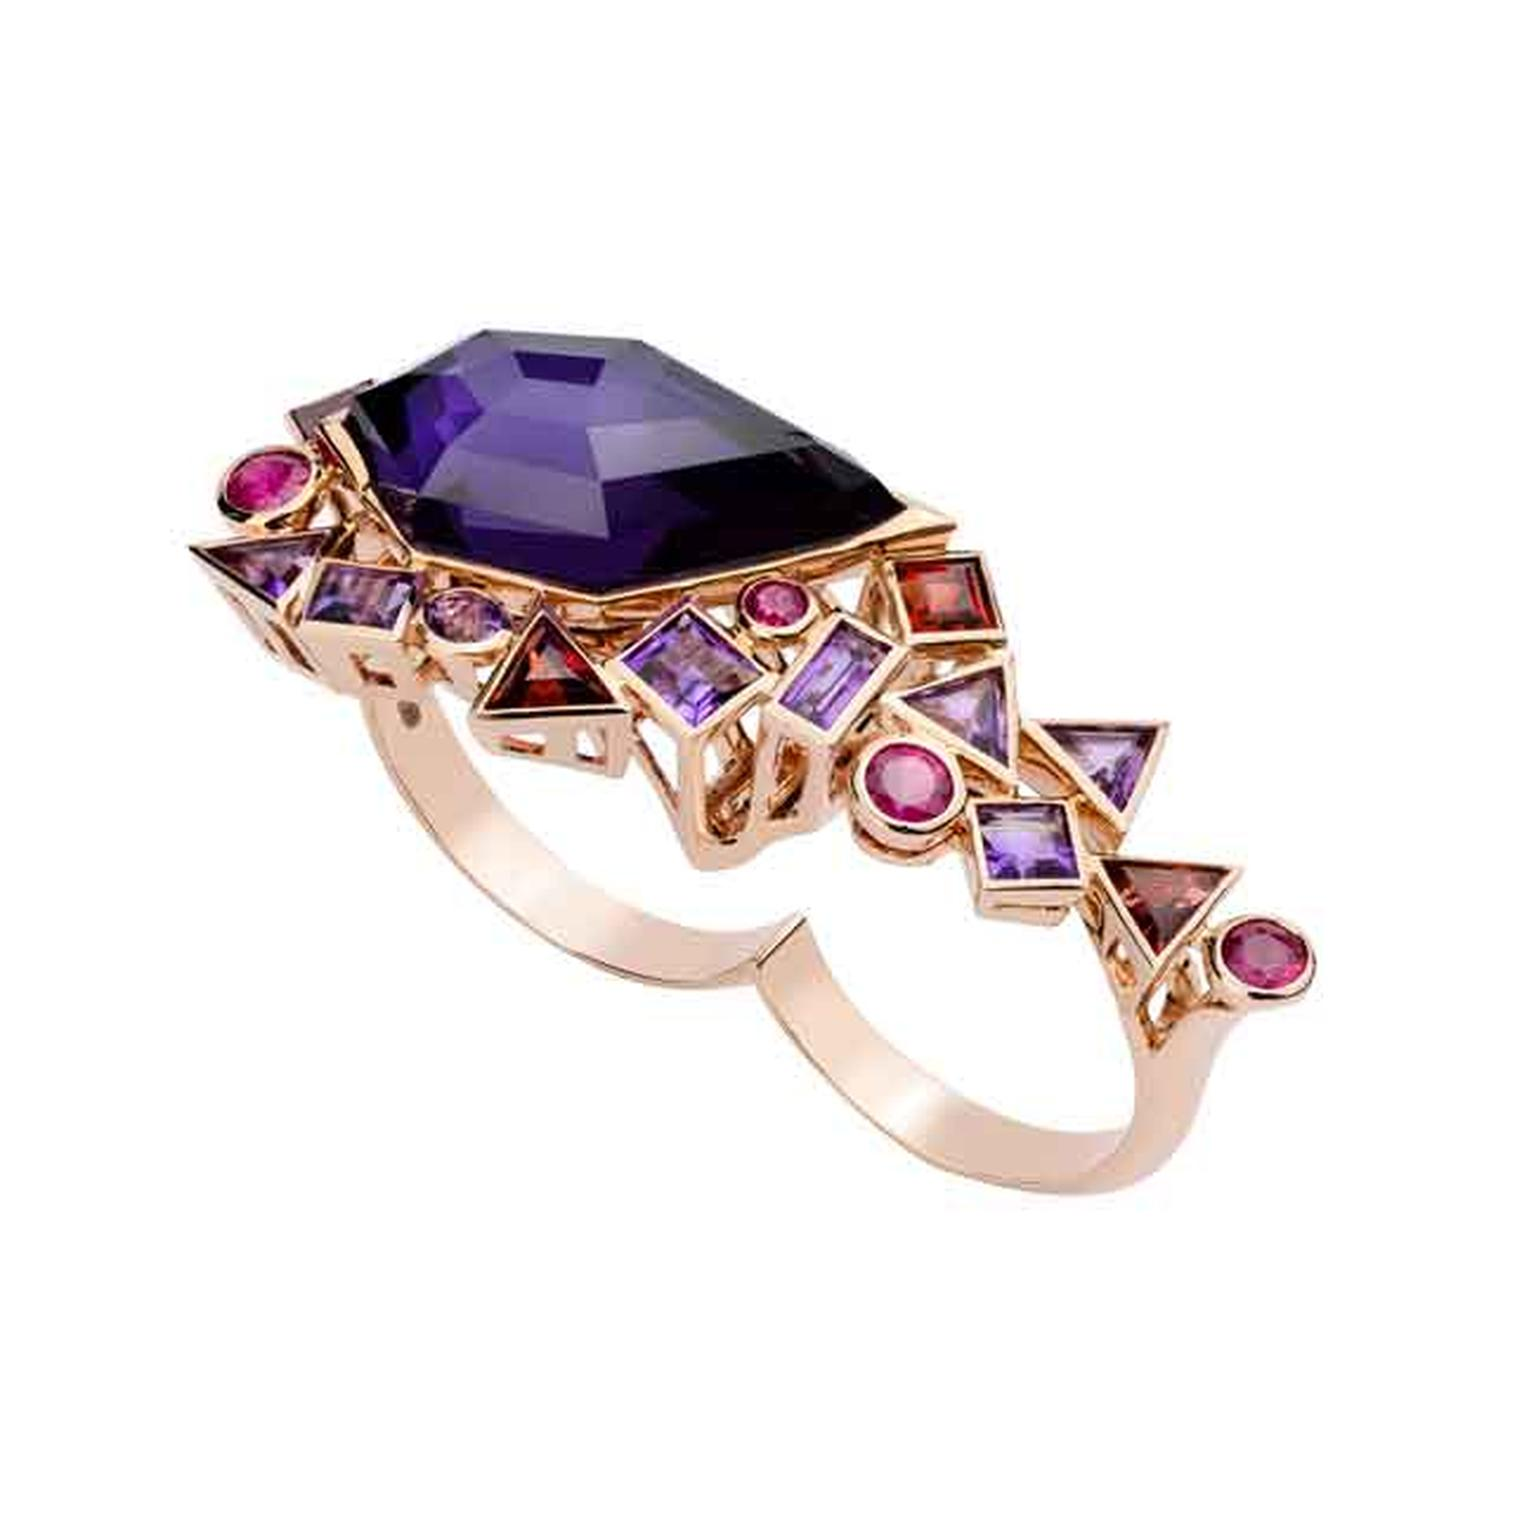 Stephen Webster rose gold ring_main